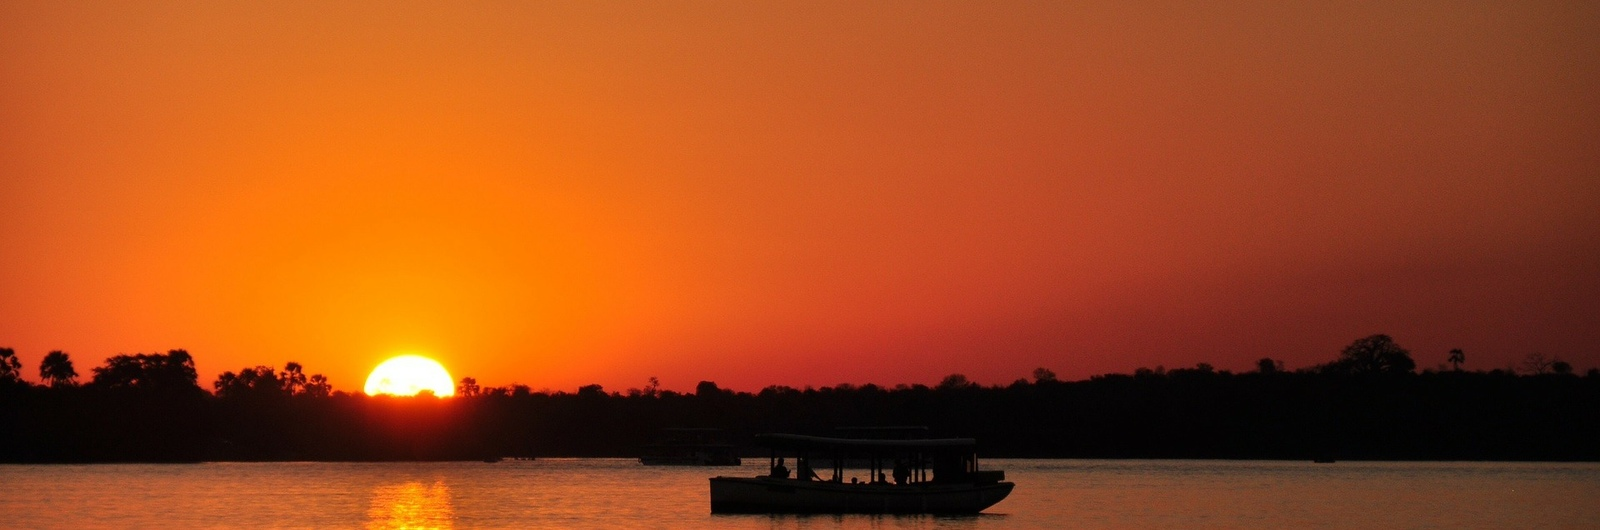 city header mozambique zambezi river